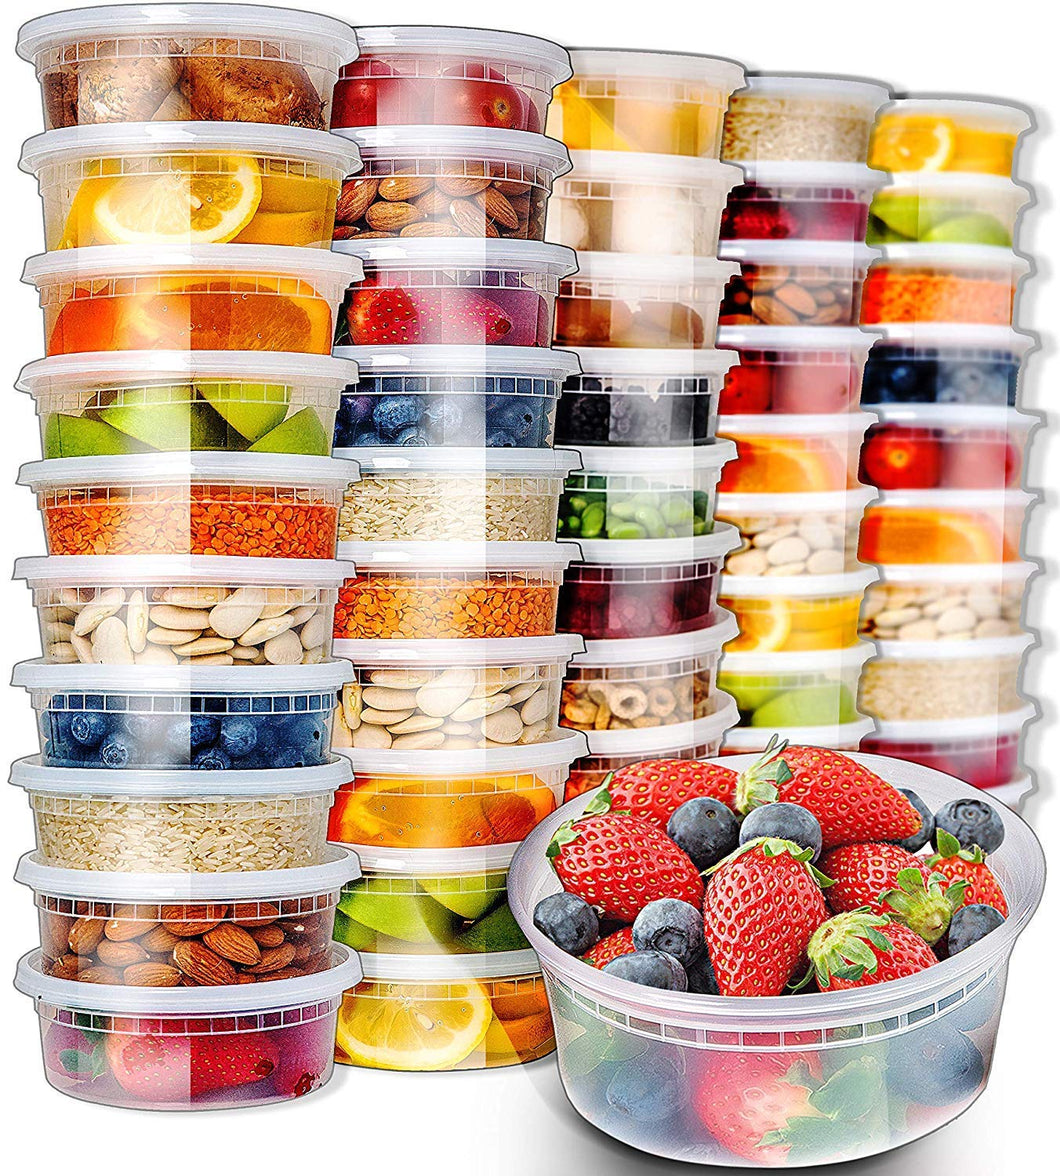 50pk 8oz Small Plastic Containers with Lids - Slime Containers with lids Freezer Containers Deli Containers with Lids - Food Containers Meal Prep Food Prep Containers Plastic Food Containers with Lids - PrepNaturals - Meal Prepping - Food Storage Containers